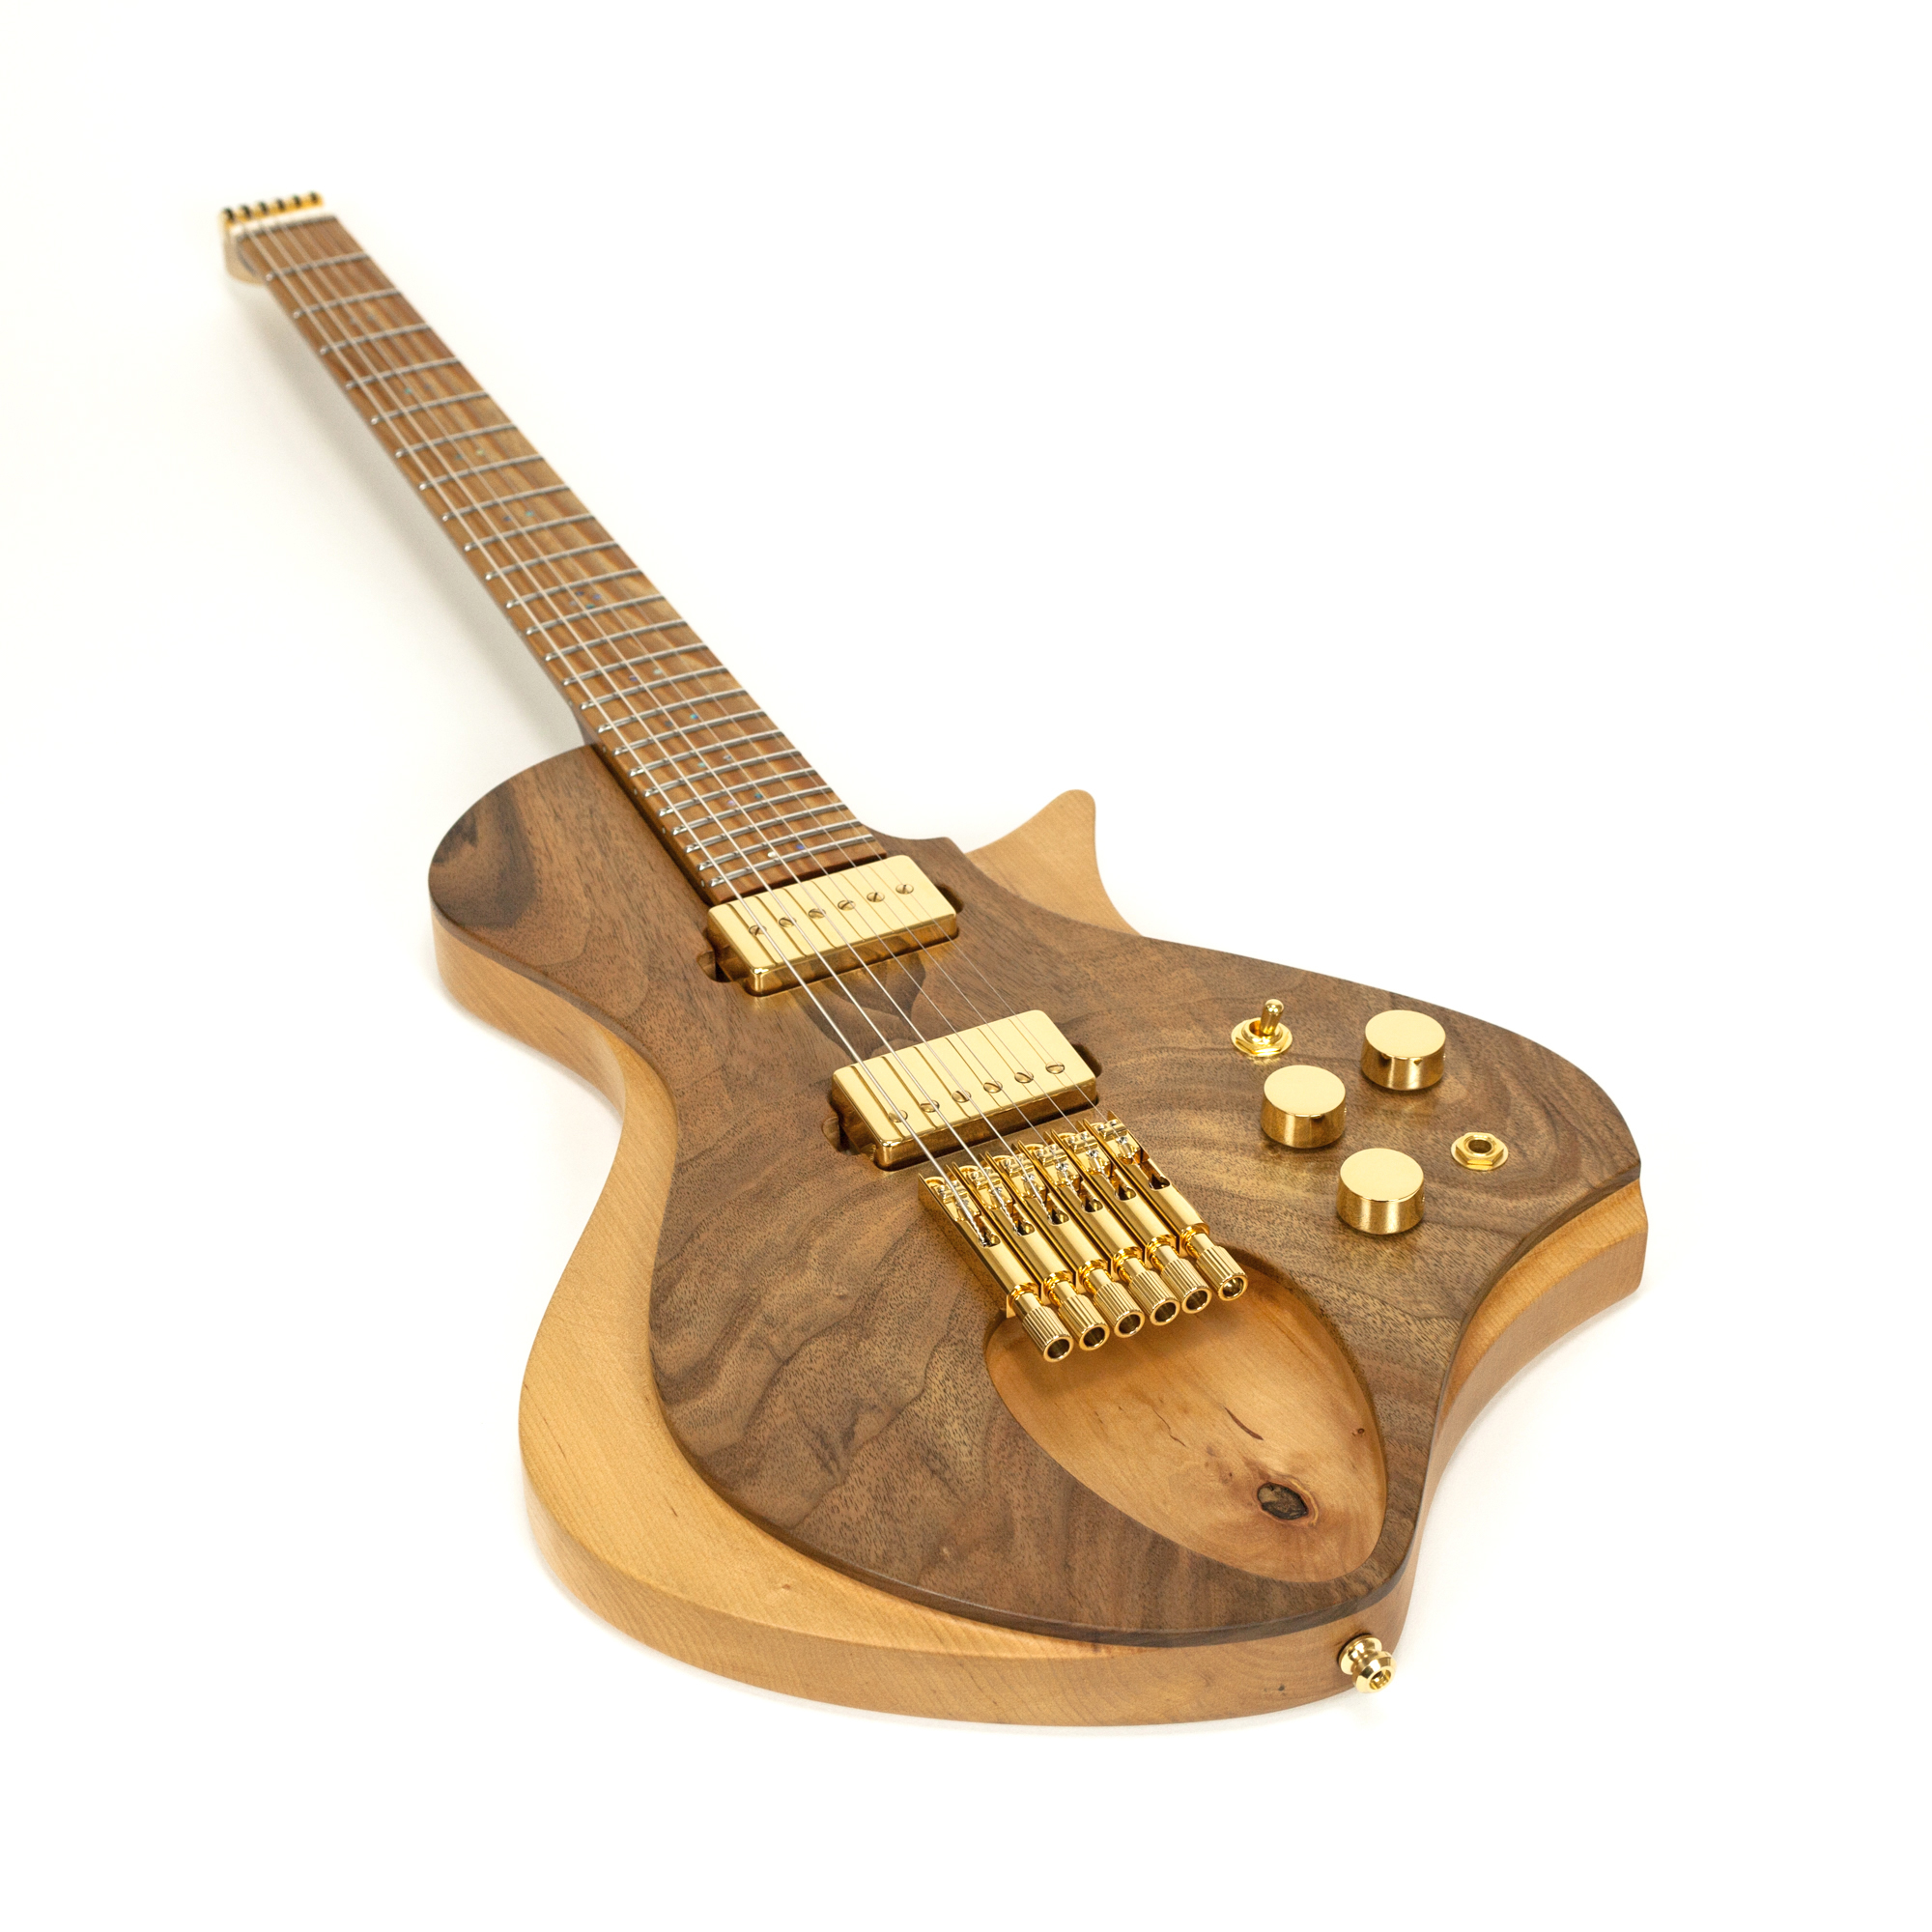 odem Gignera wit fretboard from Sonowood spruce